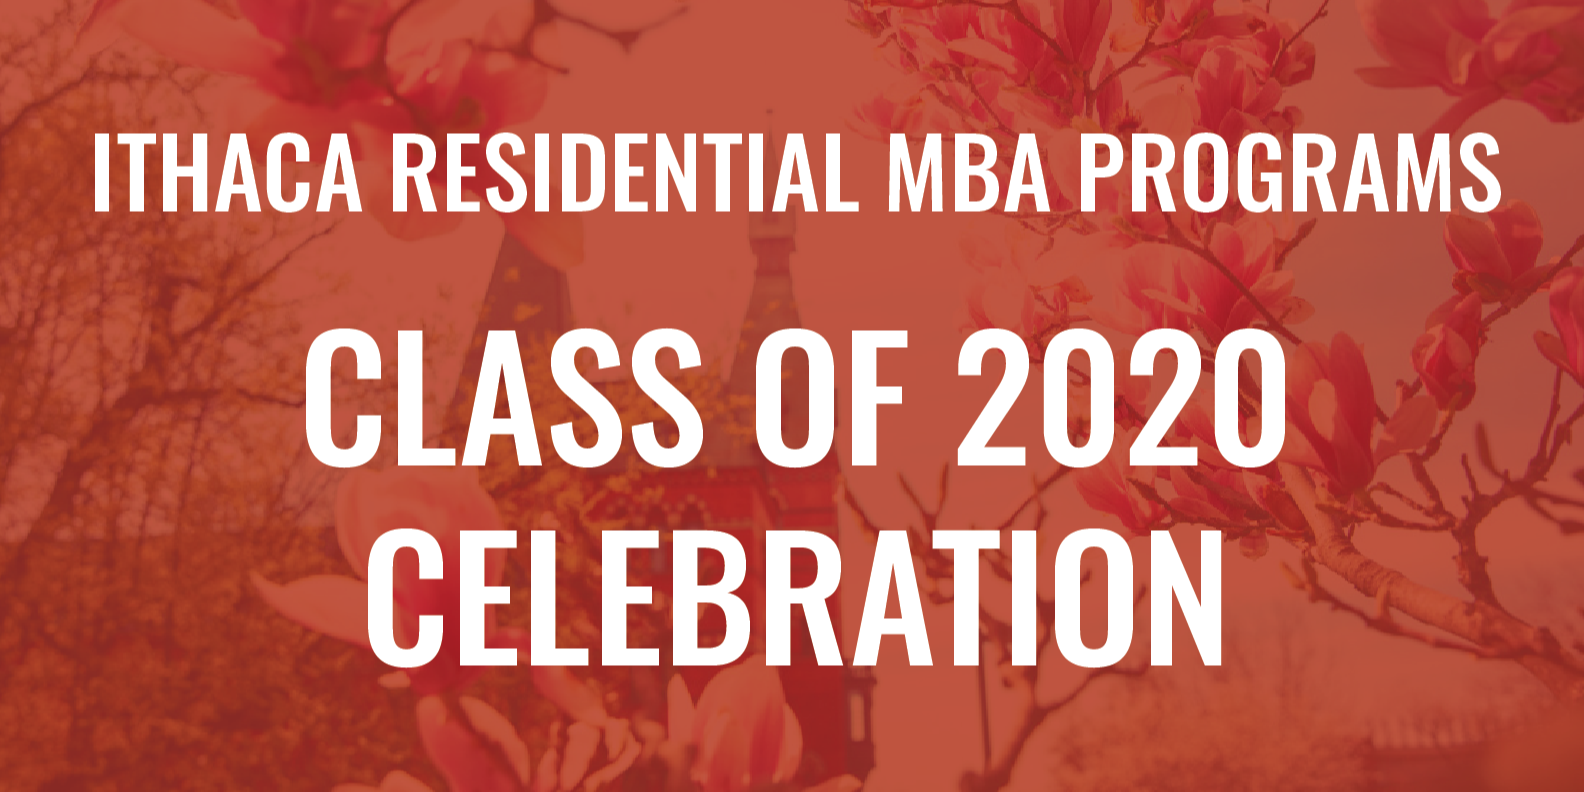 Ithaca Residential MBA Programs: A Virtual Celebration of the Class of 2020